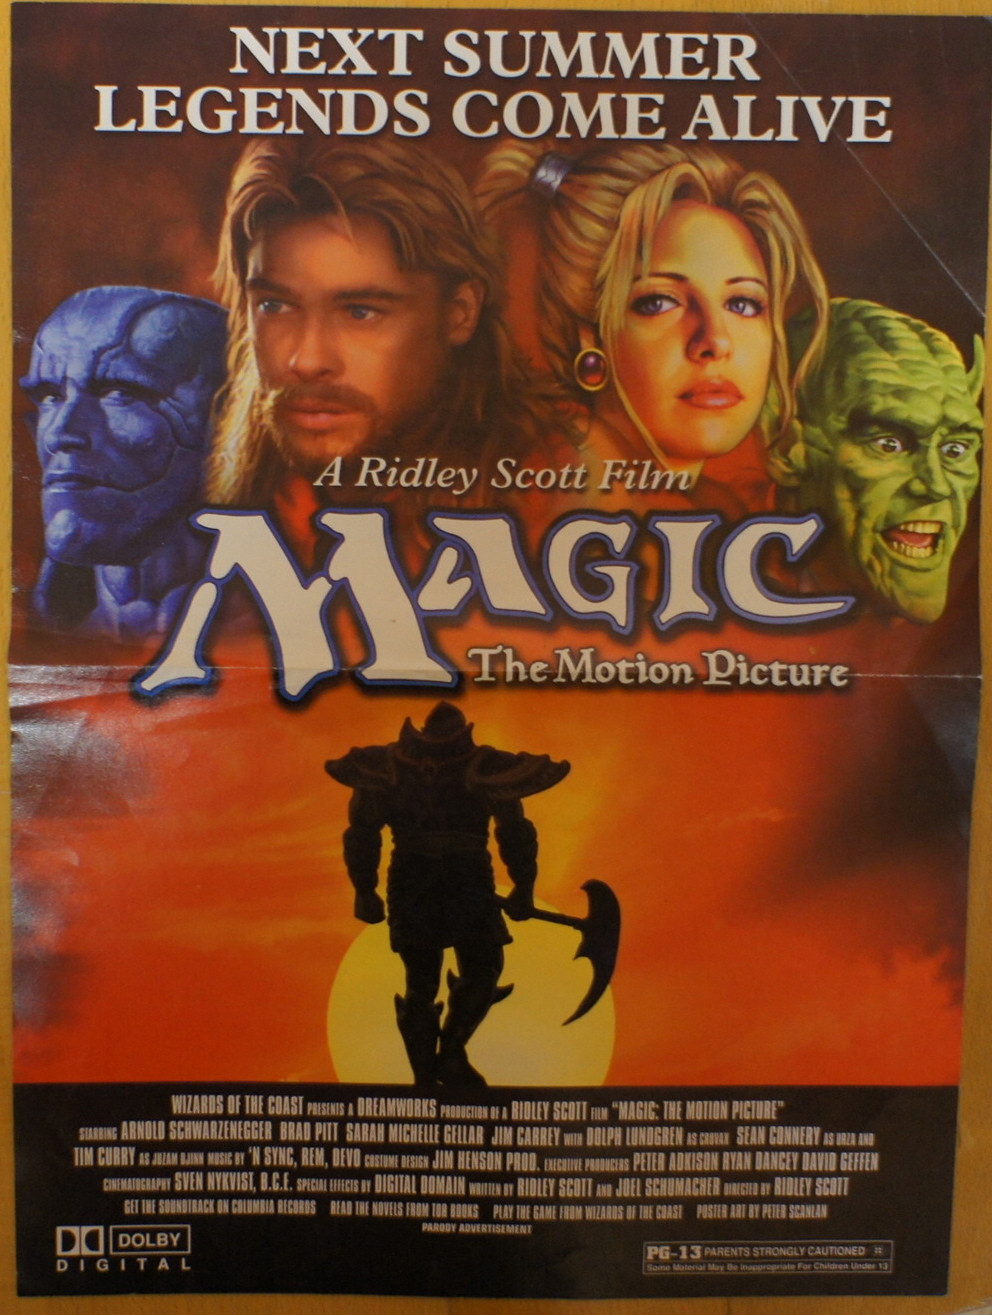 "Today I found a blast from the past, thanks to social media. We all know that Magic is coming out with a major movie in the next few years. It <a href=""http://www.quietspeculation.com/2014/08/this-is-how-you-do-april-fools-magic-style/#more-'"" class=""more-link"">more »</a>"